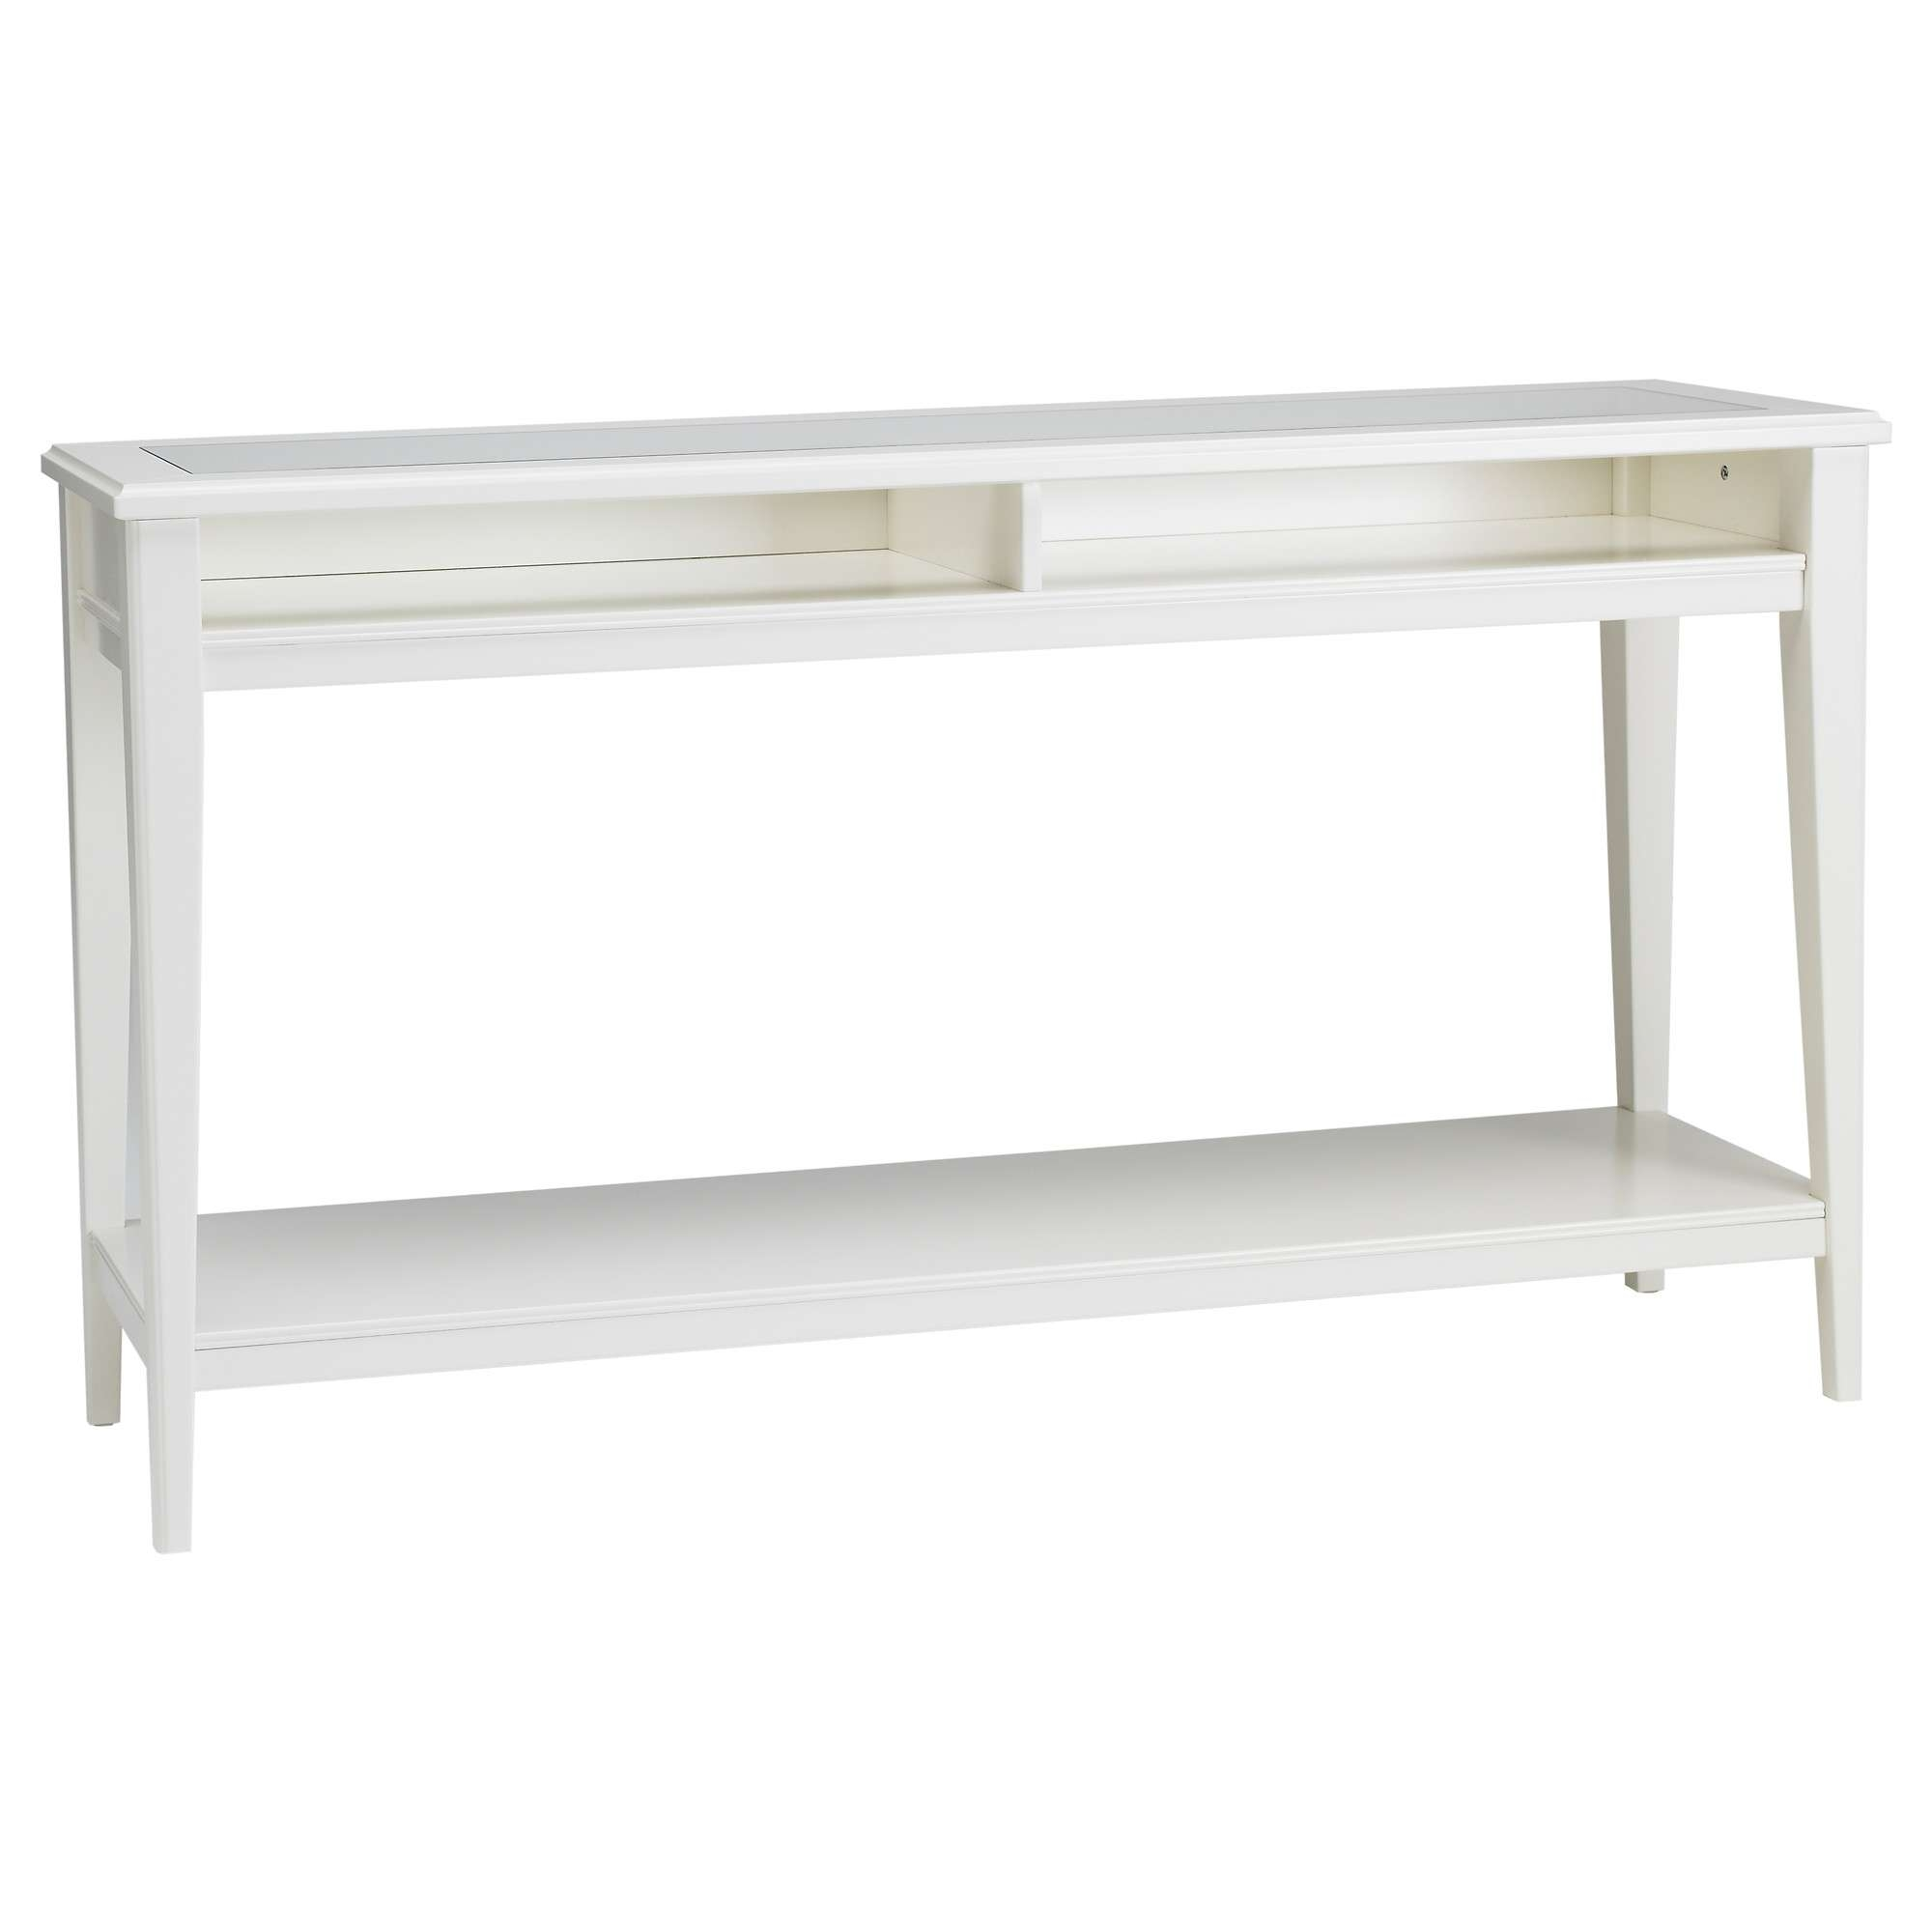 Console Tables, Sofa Tables & Sideboards – Ikea Pertaining To White Sideboards Tables (View 8 of 20)